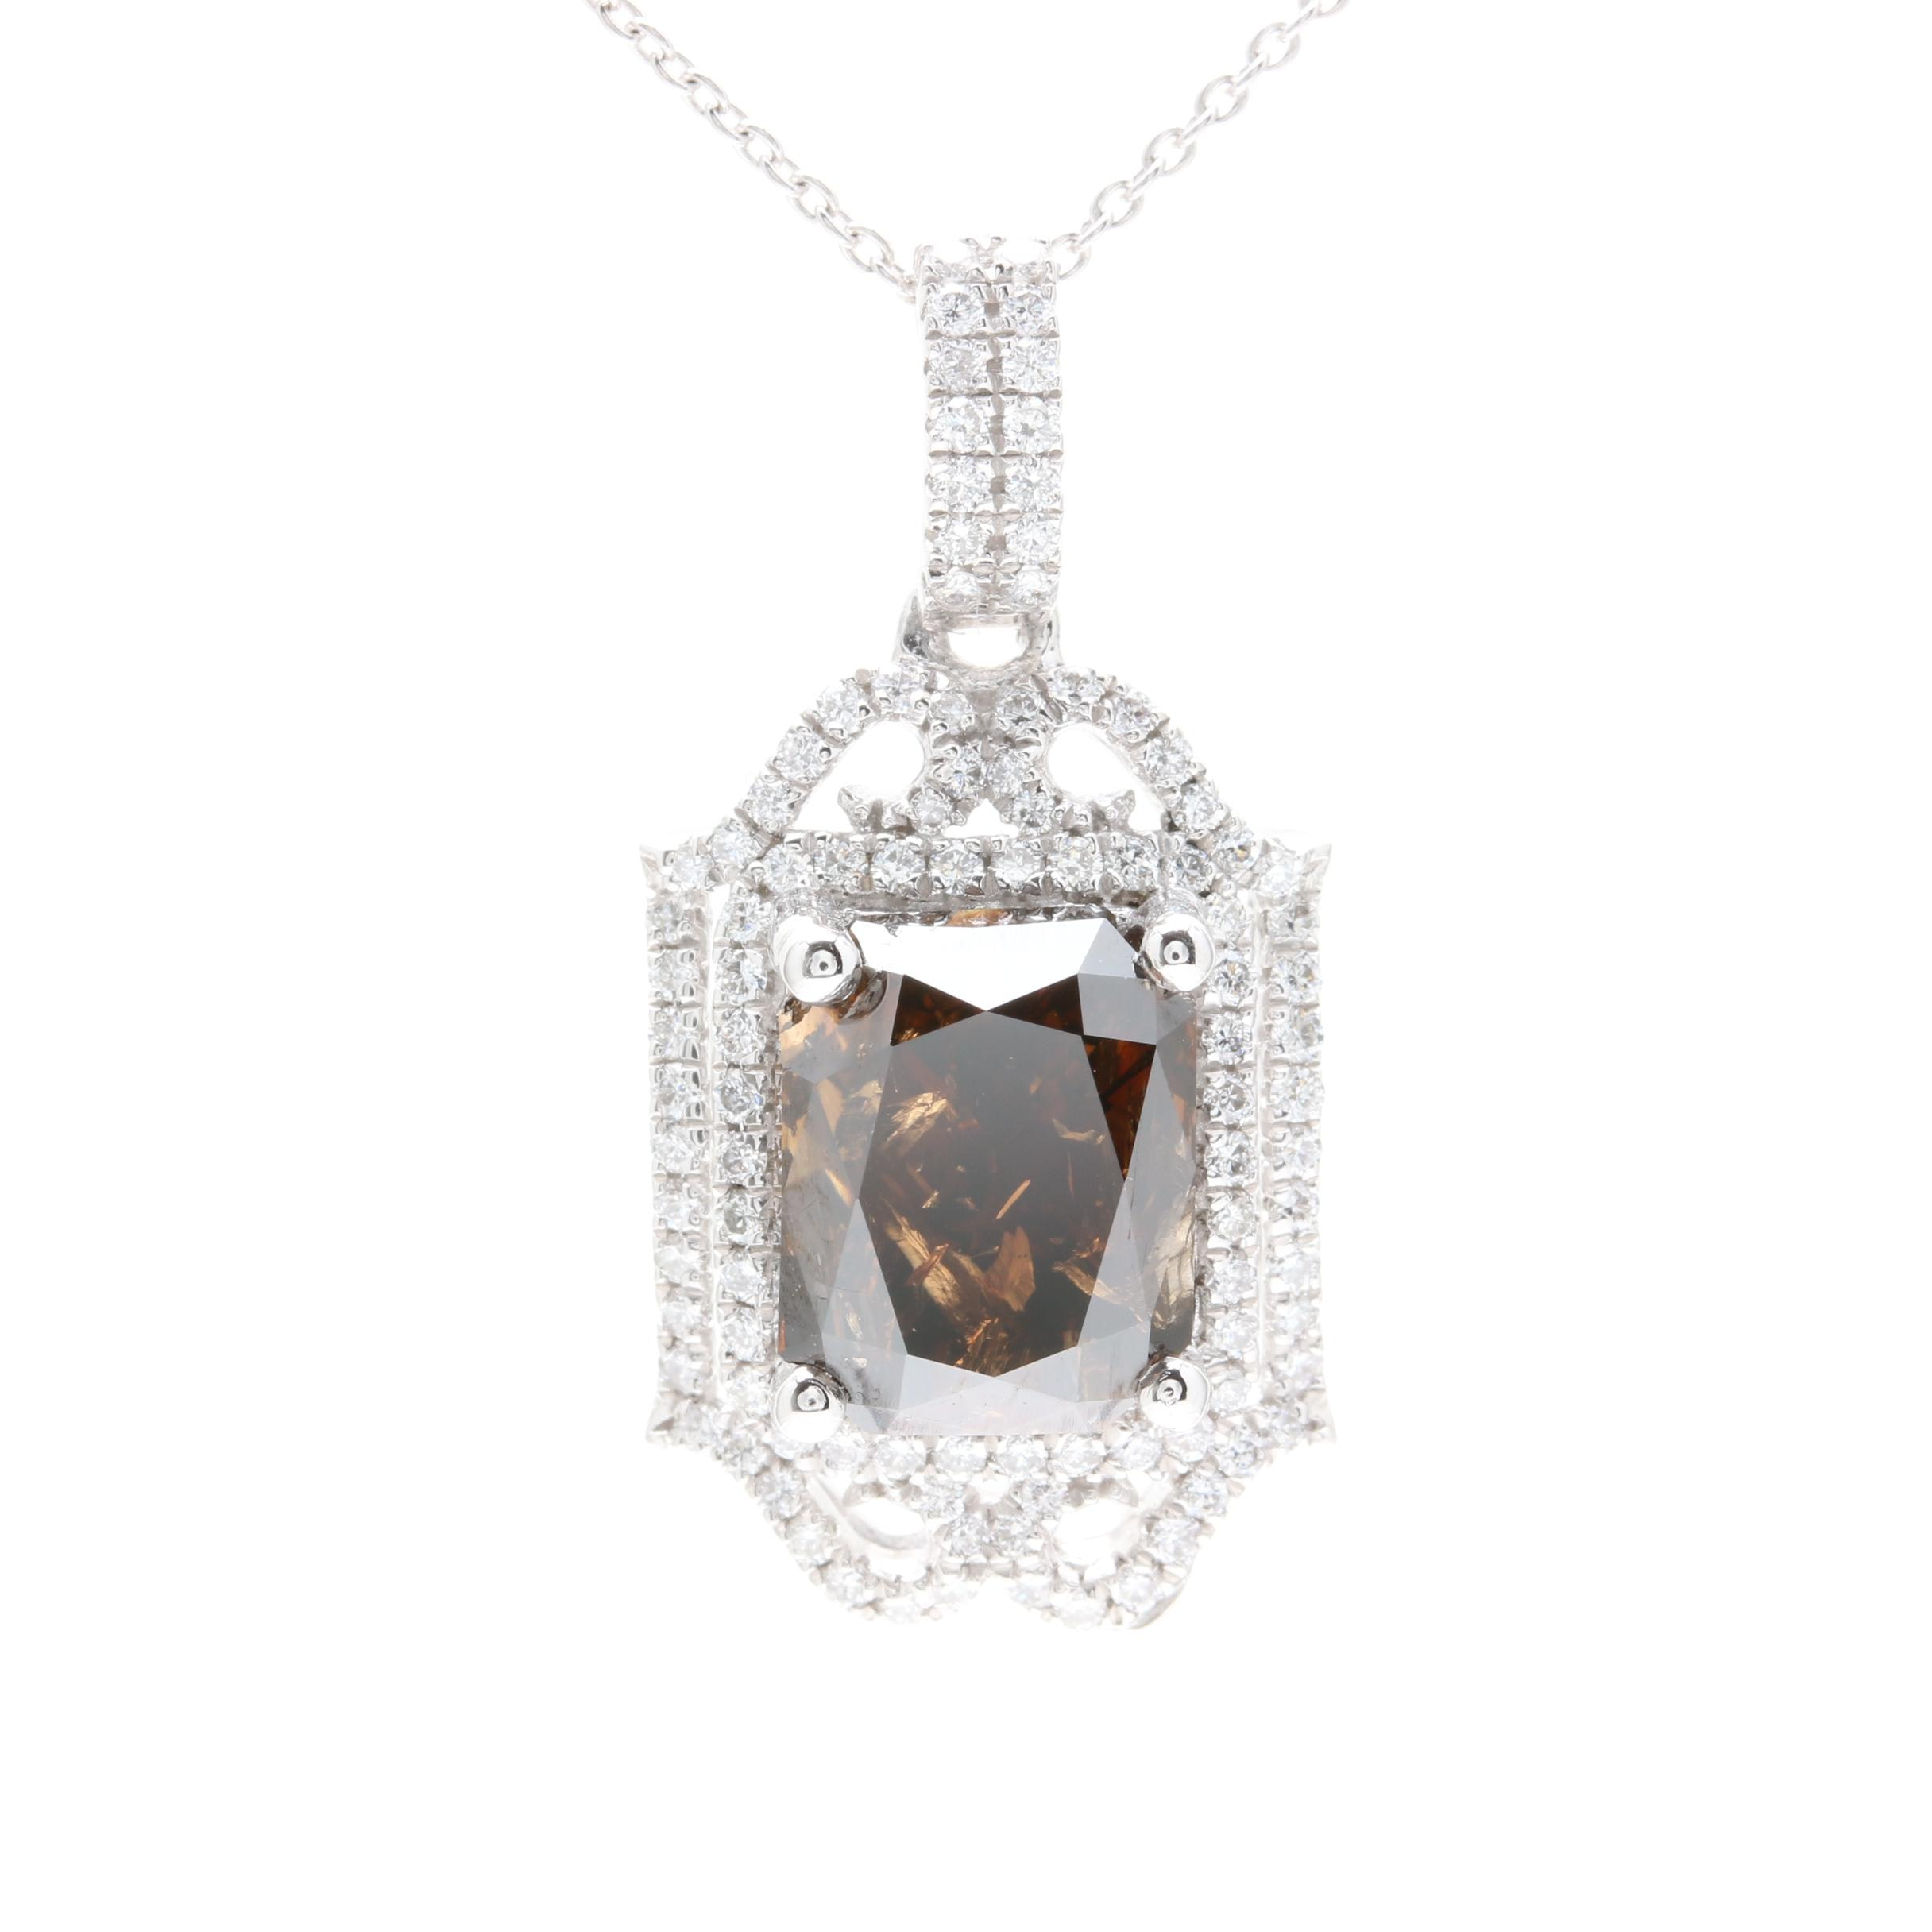 Platinum 5.70 CTW Diamond Pendant Necklace Including GIA Certificate